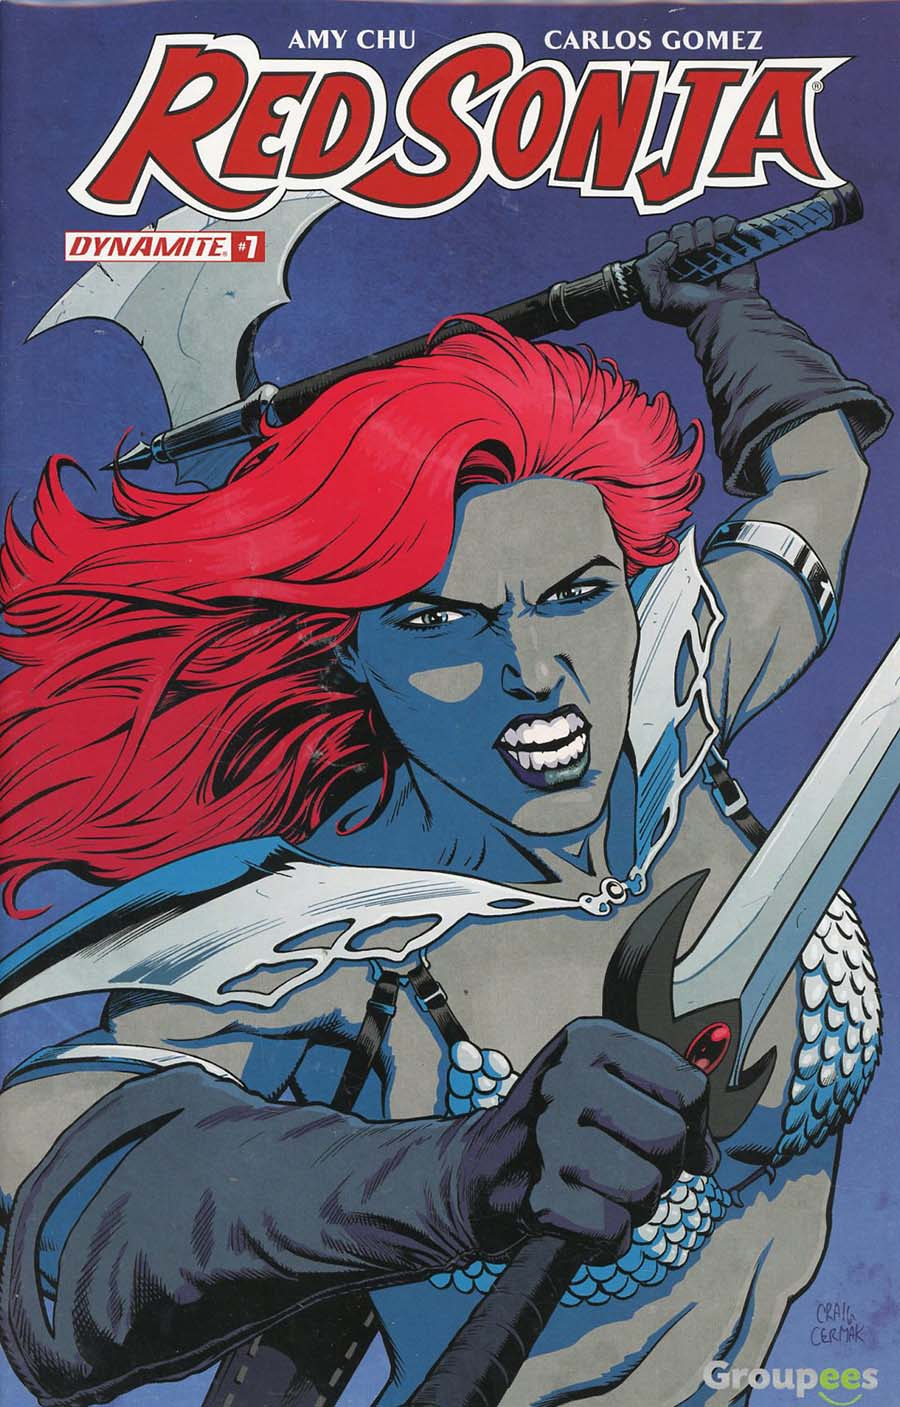 Red Sonja Vol 7 #7 Cover I Groupees Exclusive Craig Cermak Color Variant Cover